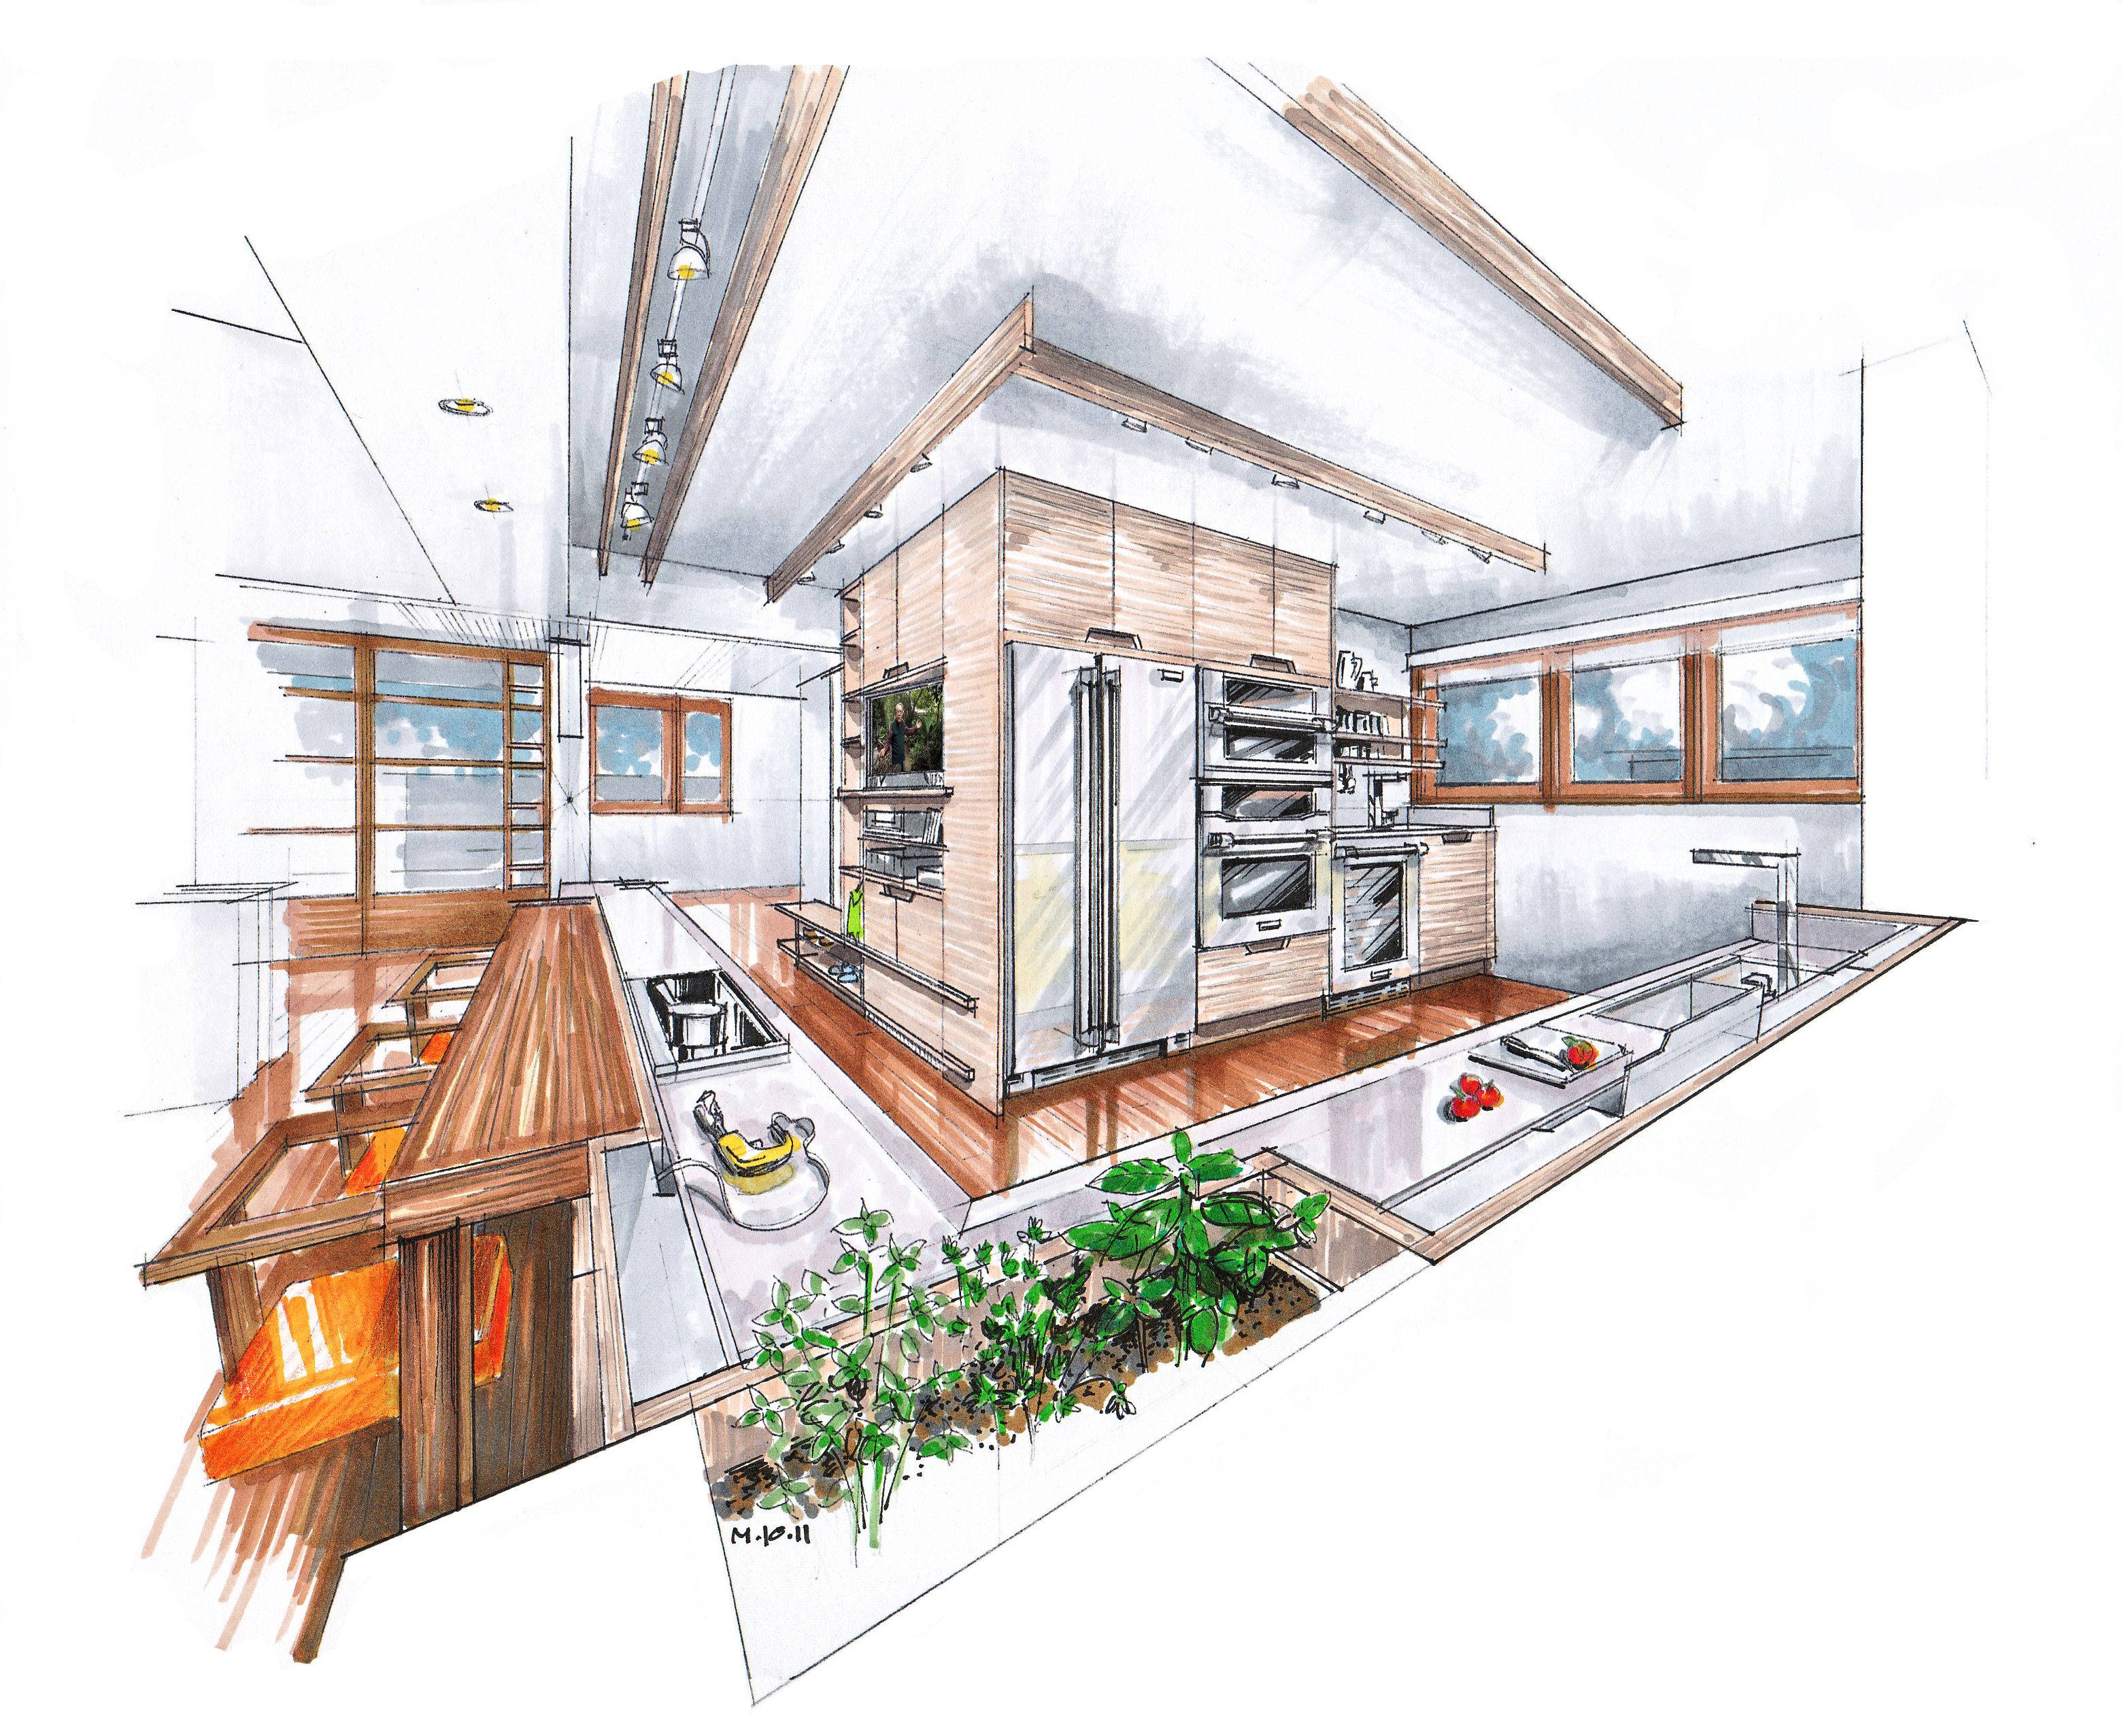 Rendering by mick ricereto bocetos dise o pinterest for Studio 84 diseno de interiores